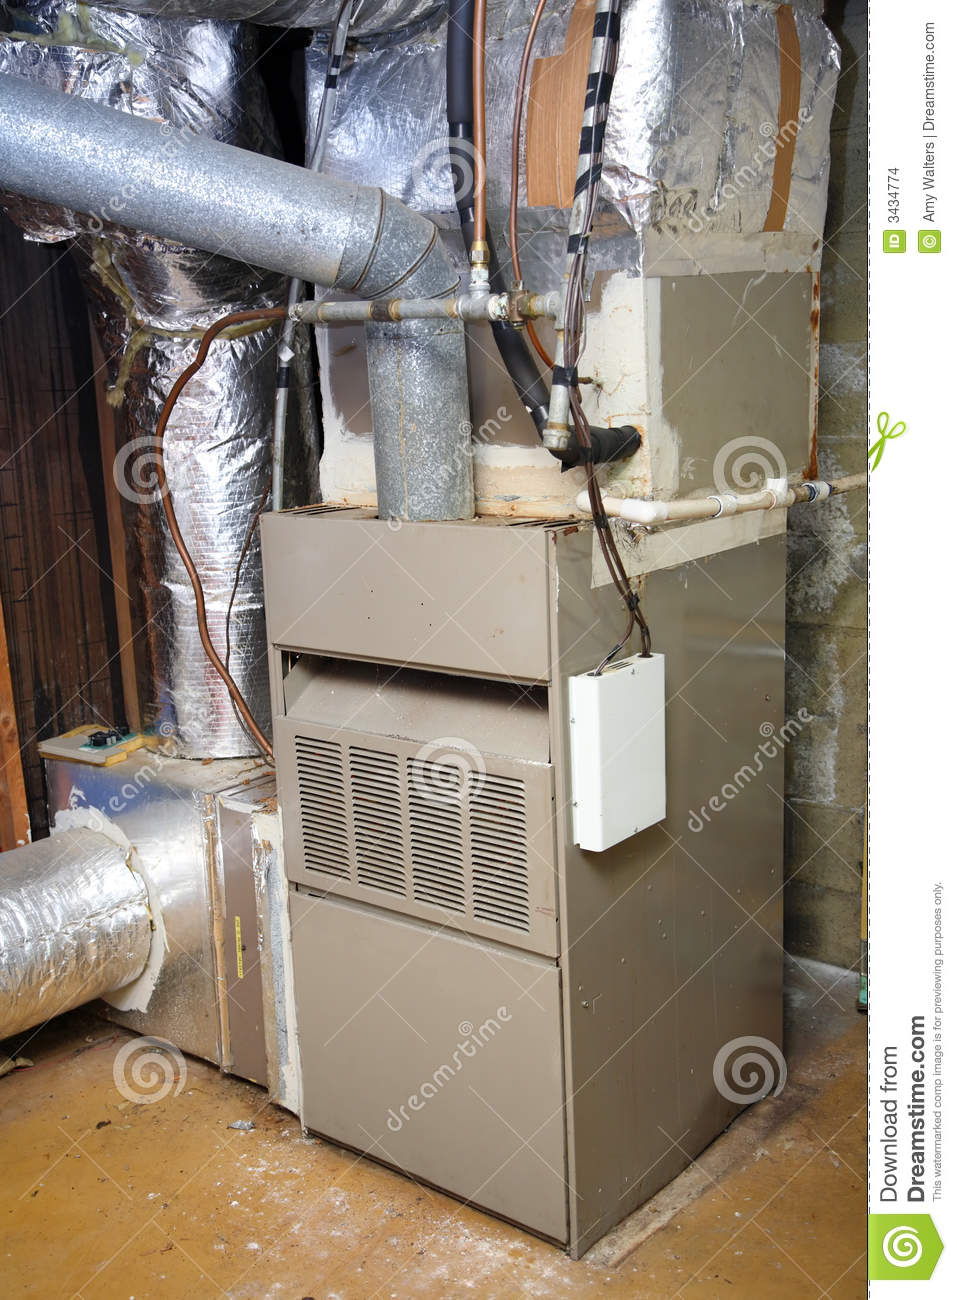 Old and dirty gas furnace